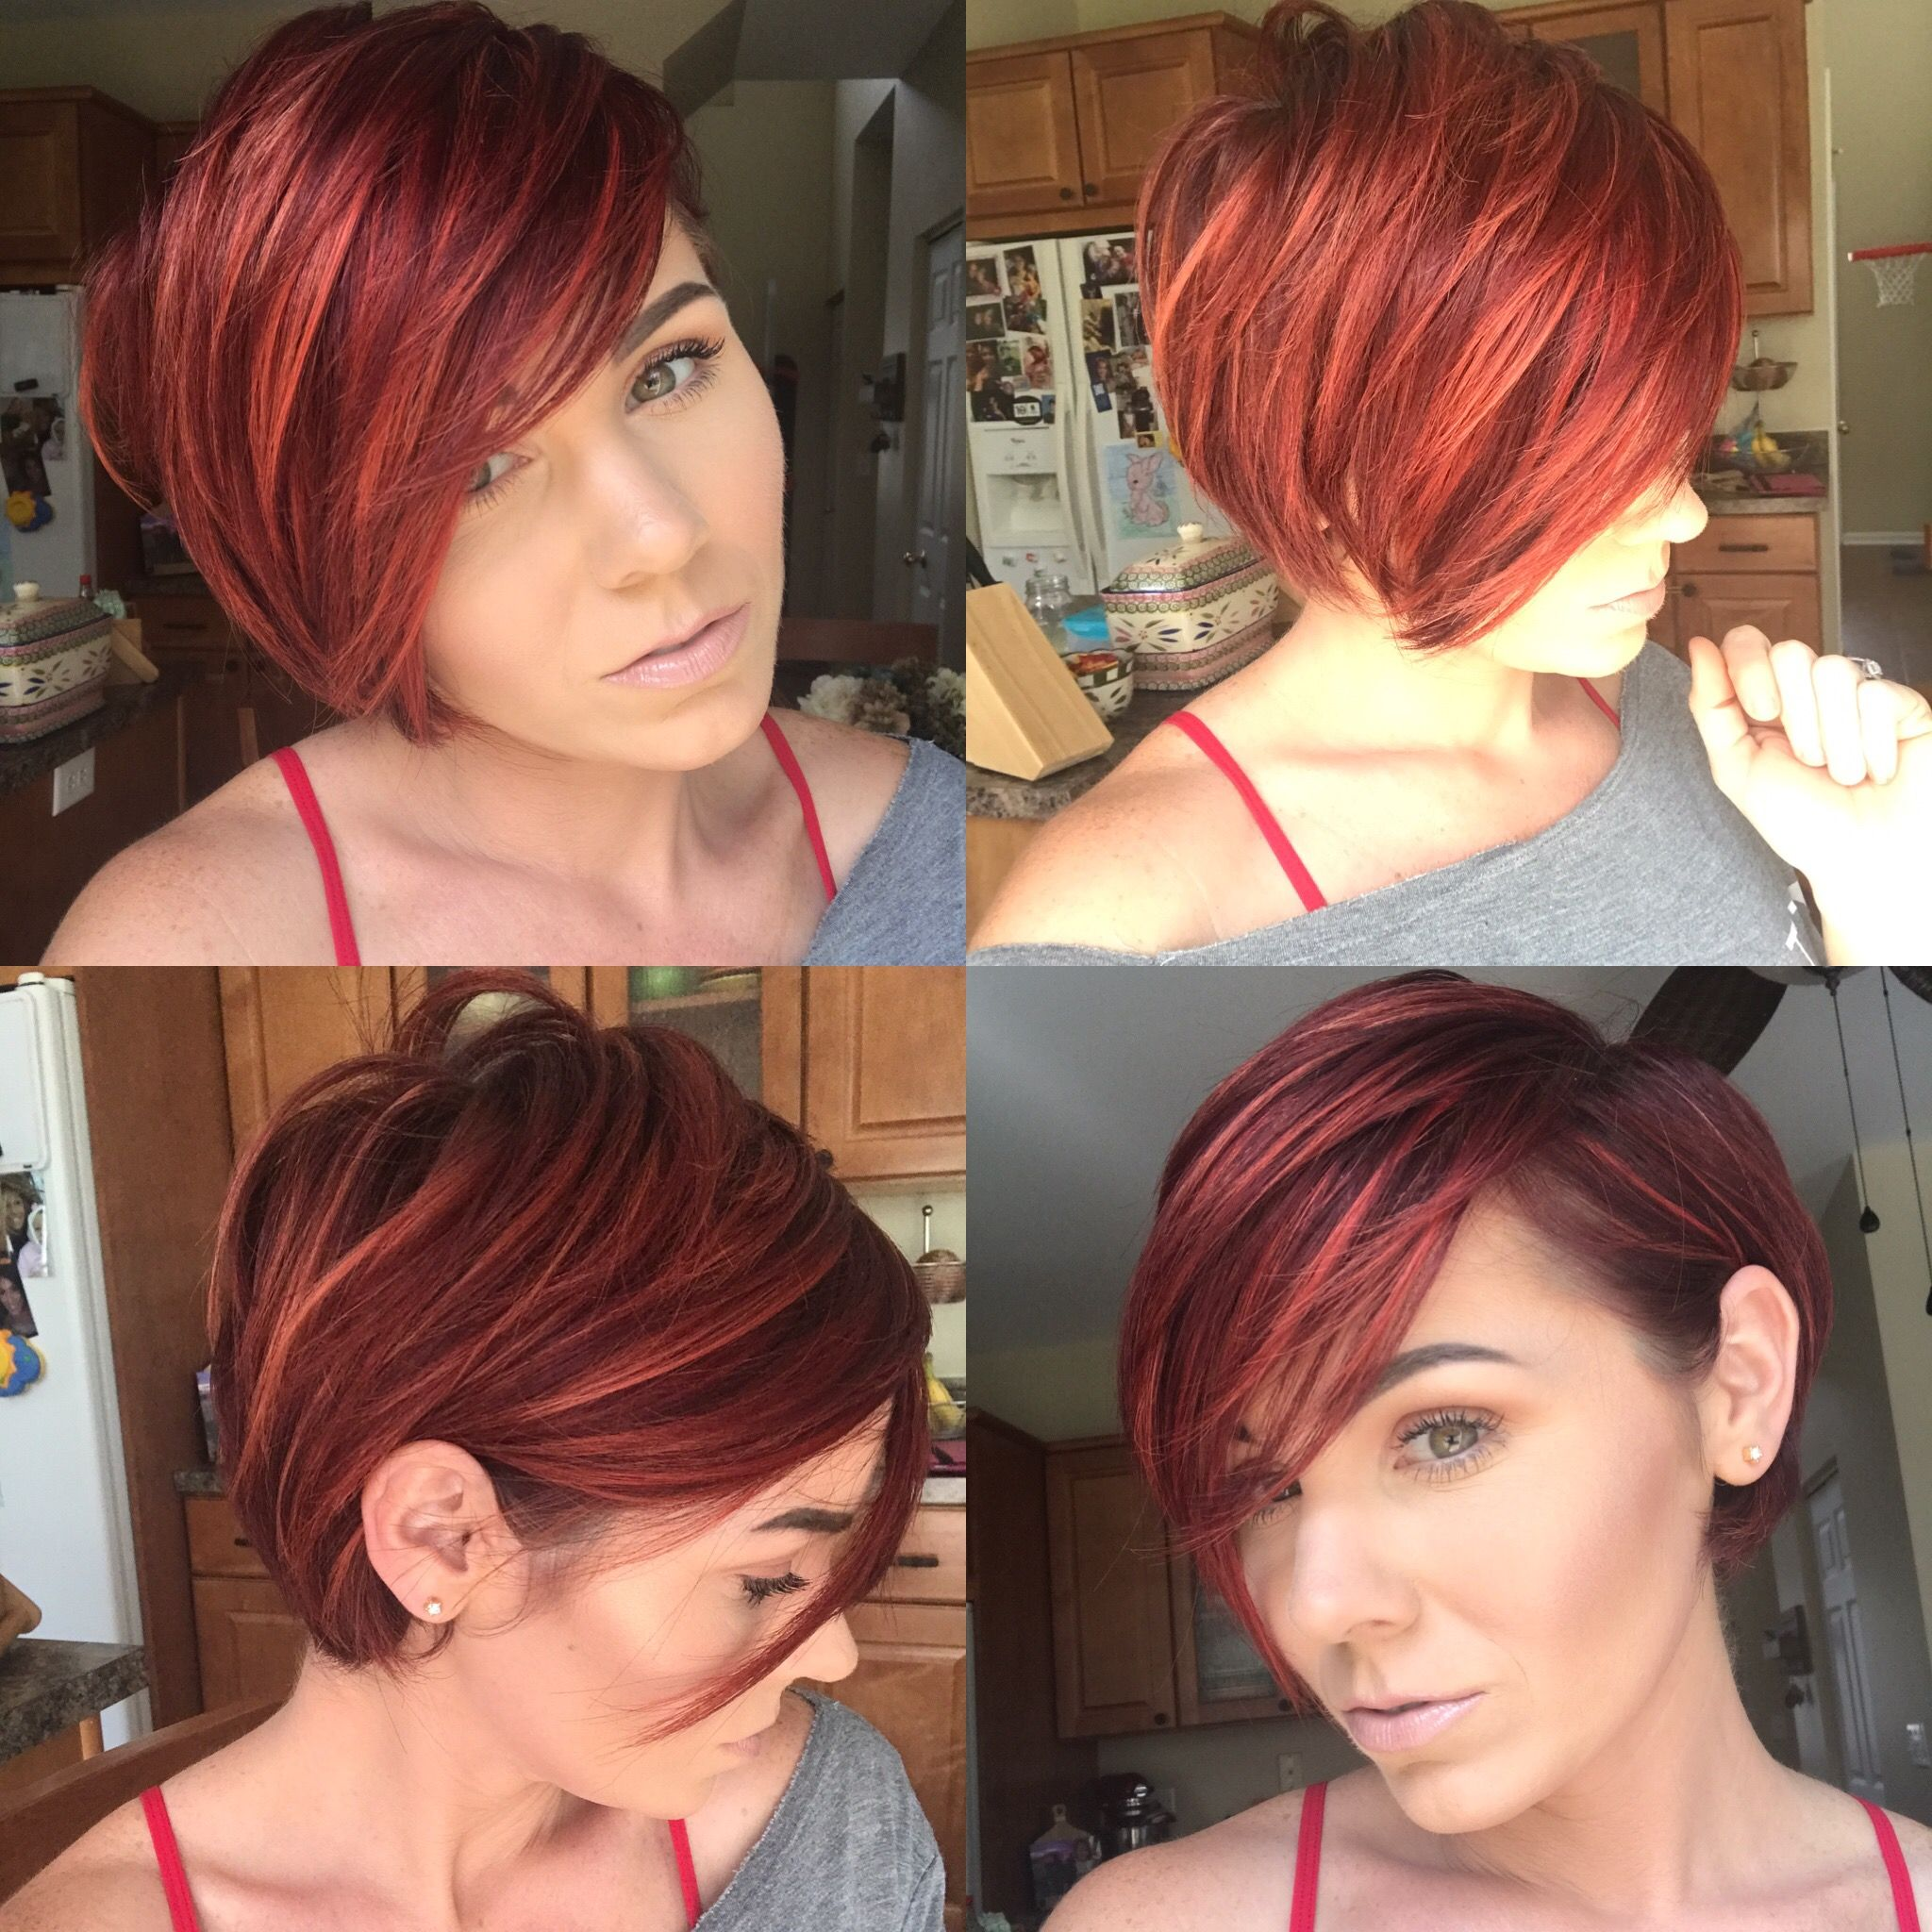 Redhair pixie bob shorthair beauty tips pinterest pixie bob